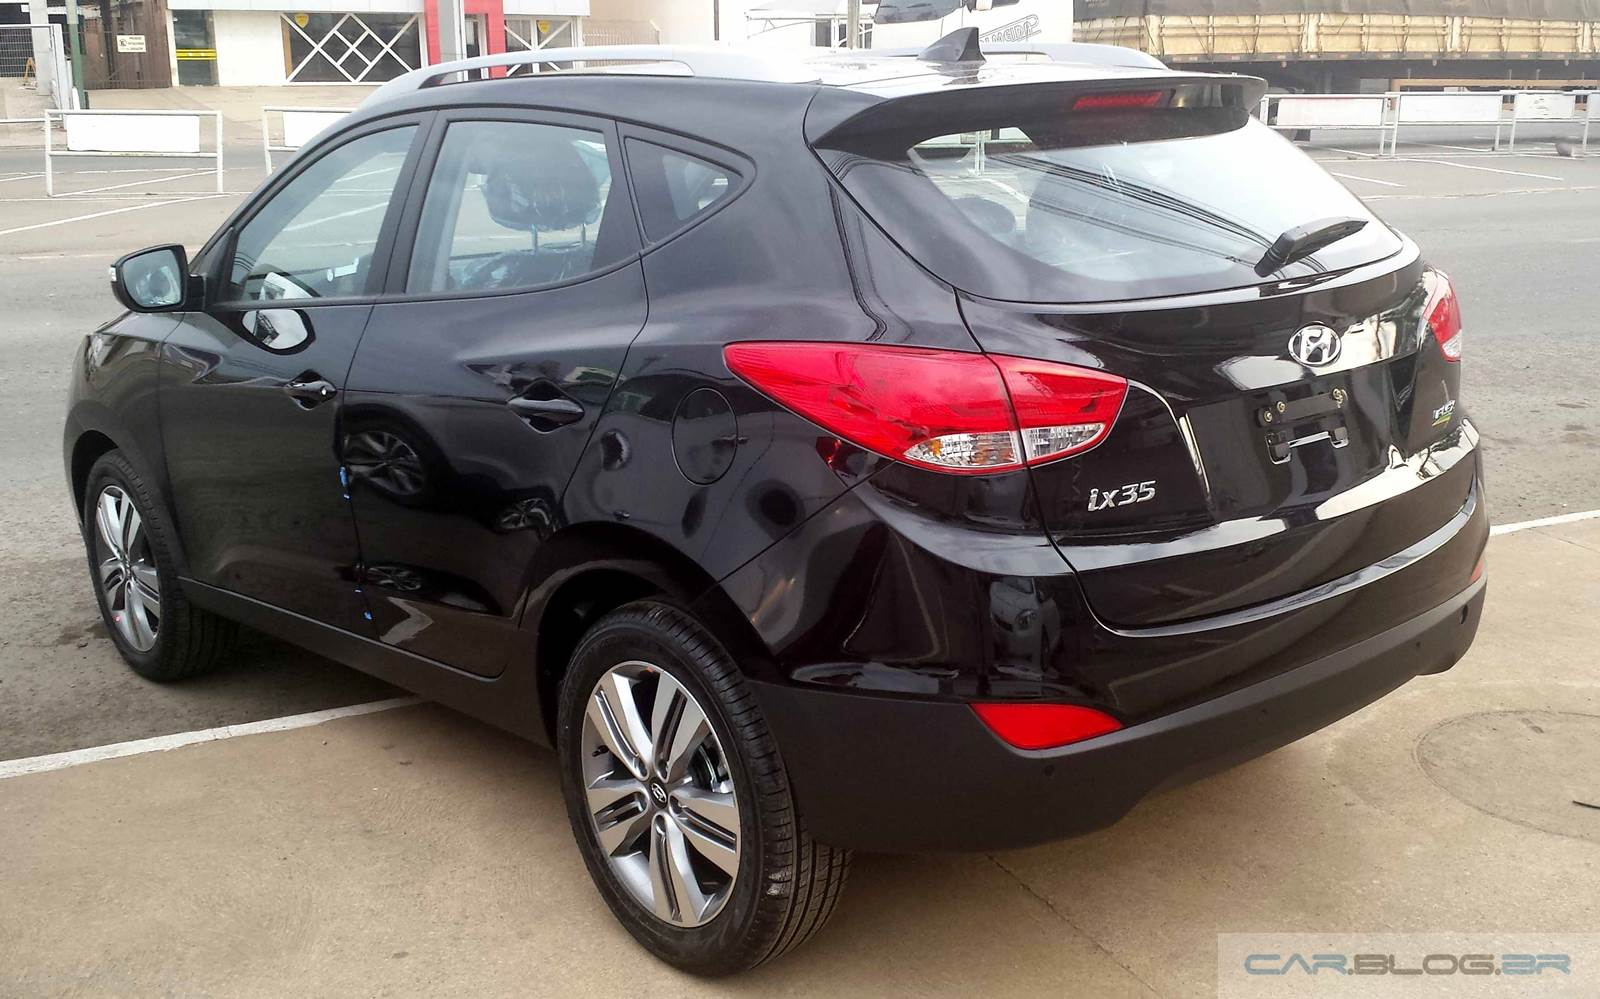 car blog br hyundai ix35 2016 vers o intermedi ria v deo e pre o. Black Bedroom Furniture Sets. Home Design Ideas